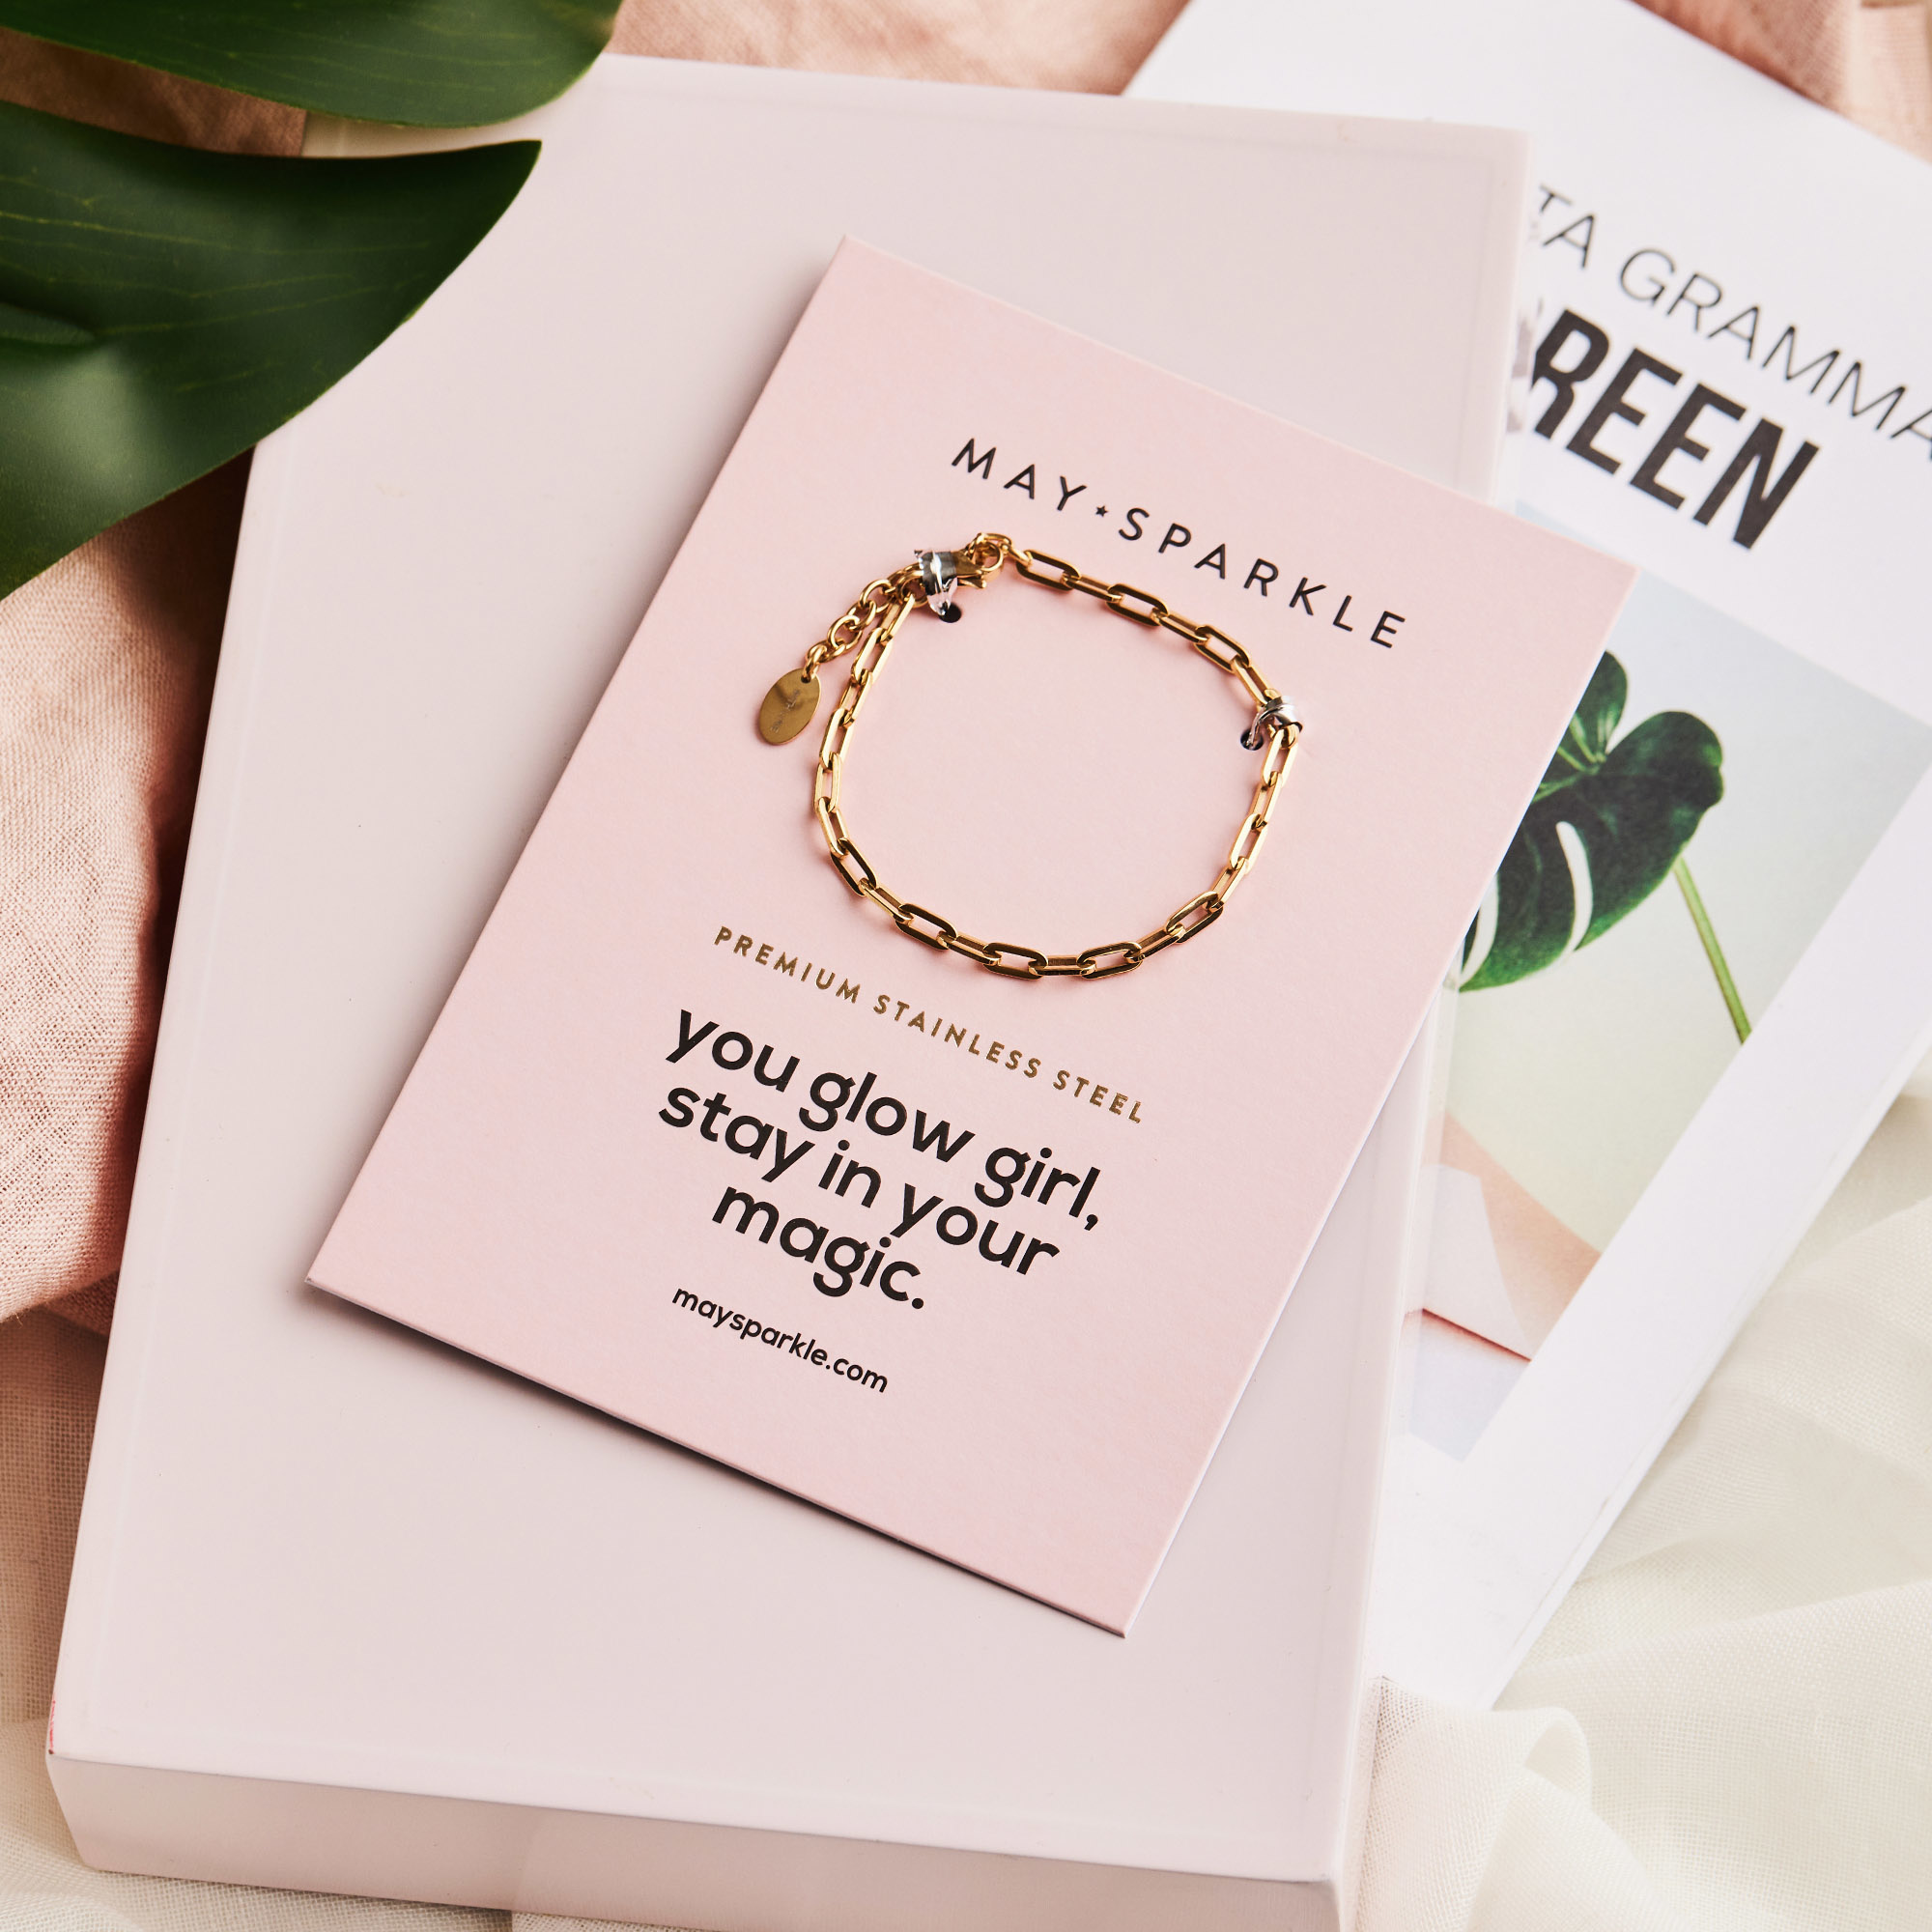 May Sparkle Happiness Rose gold colored necklace